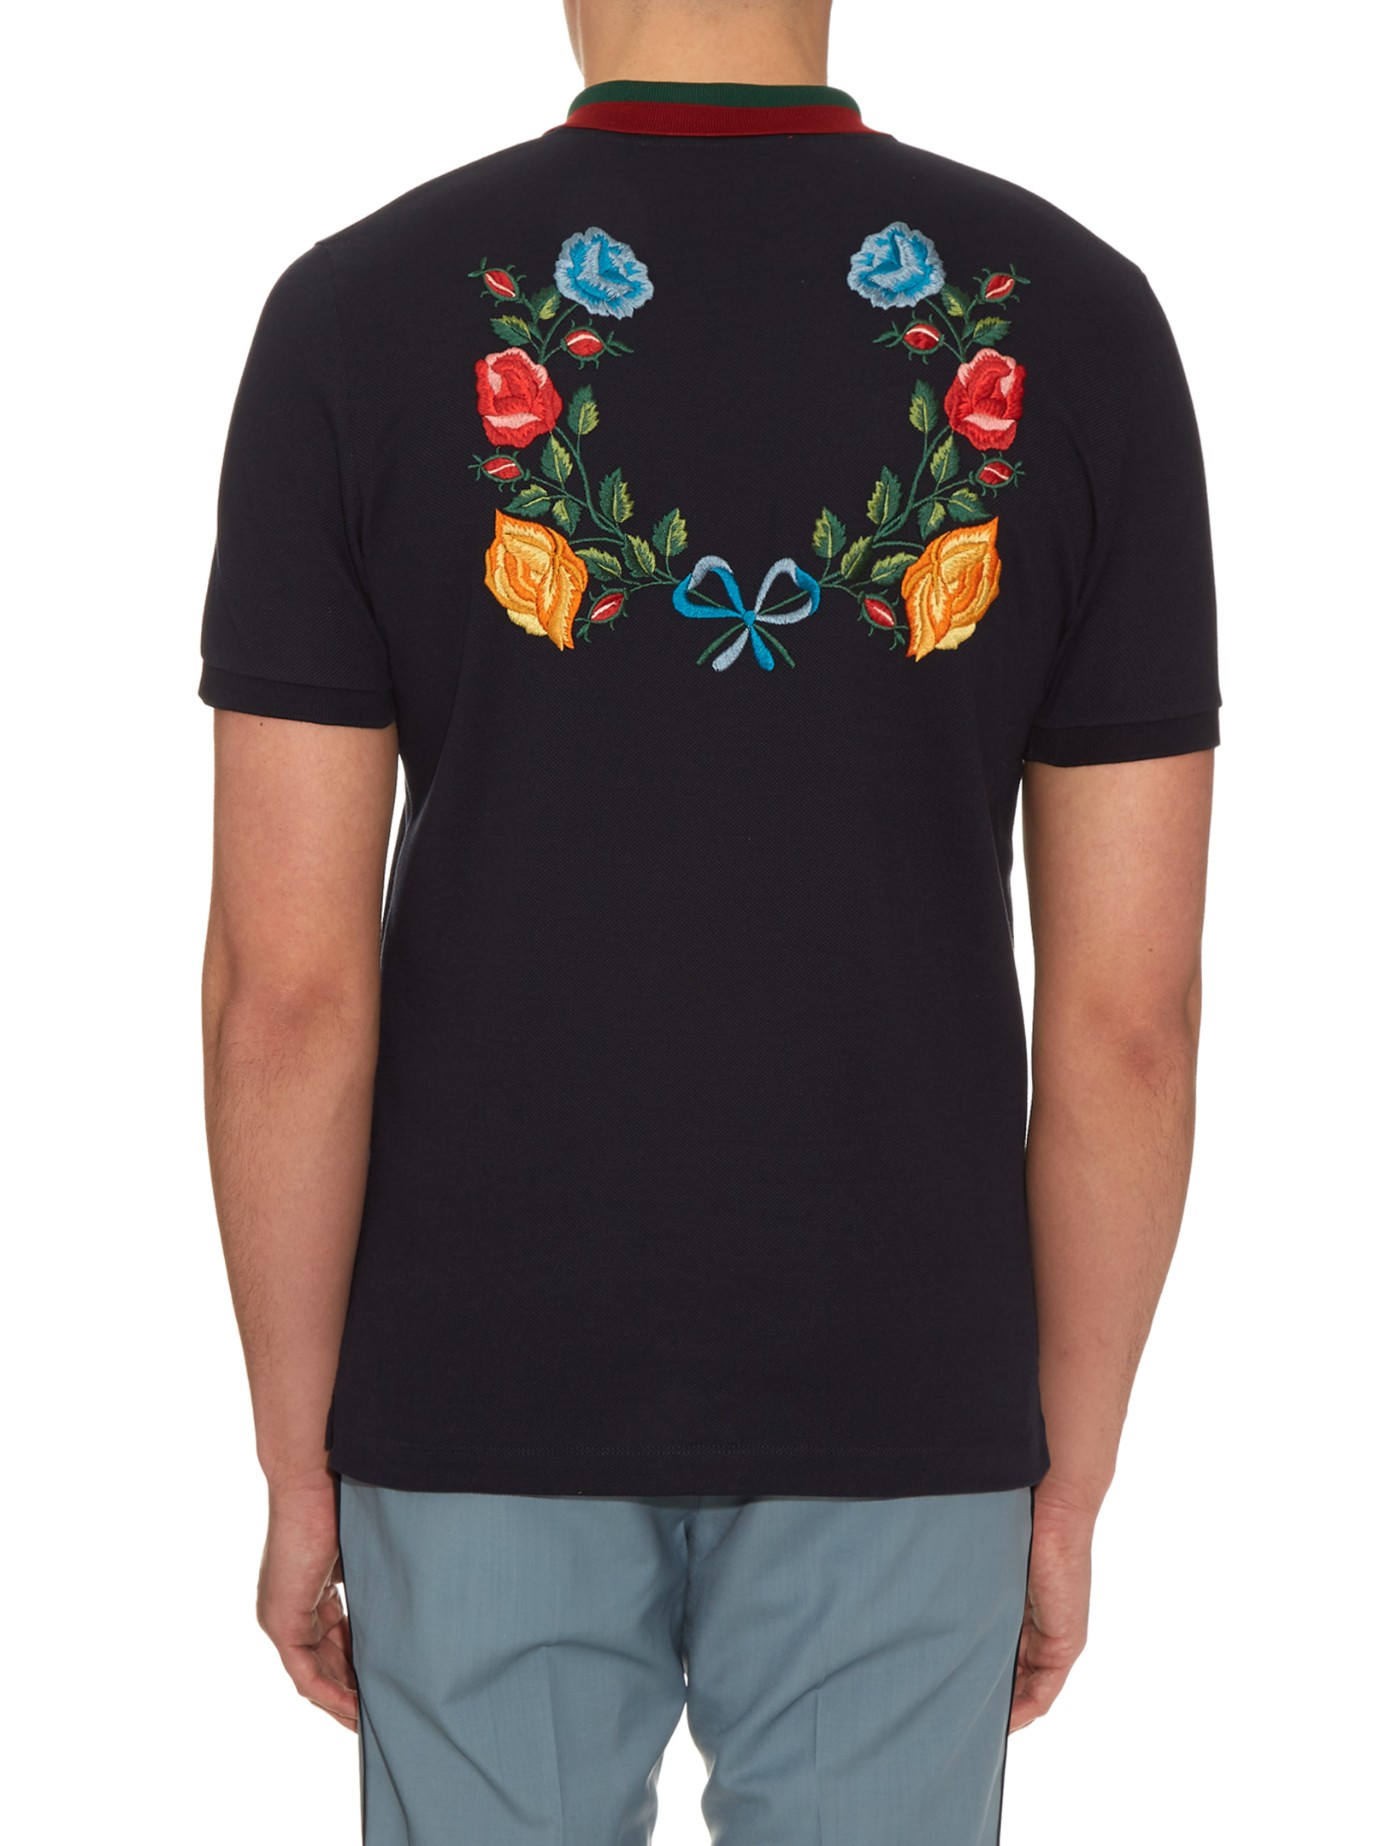 334a19c79259 Gucci Floral-embroidered Cotton-blend Polo Shirt in Black for Men - Lyst